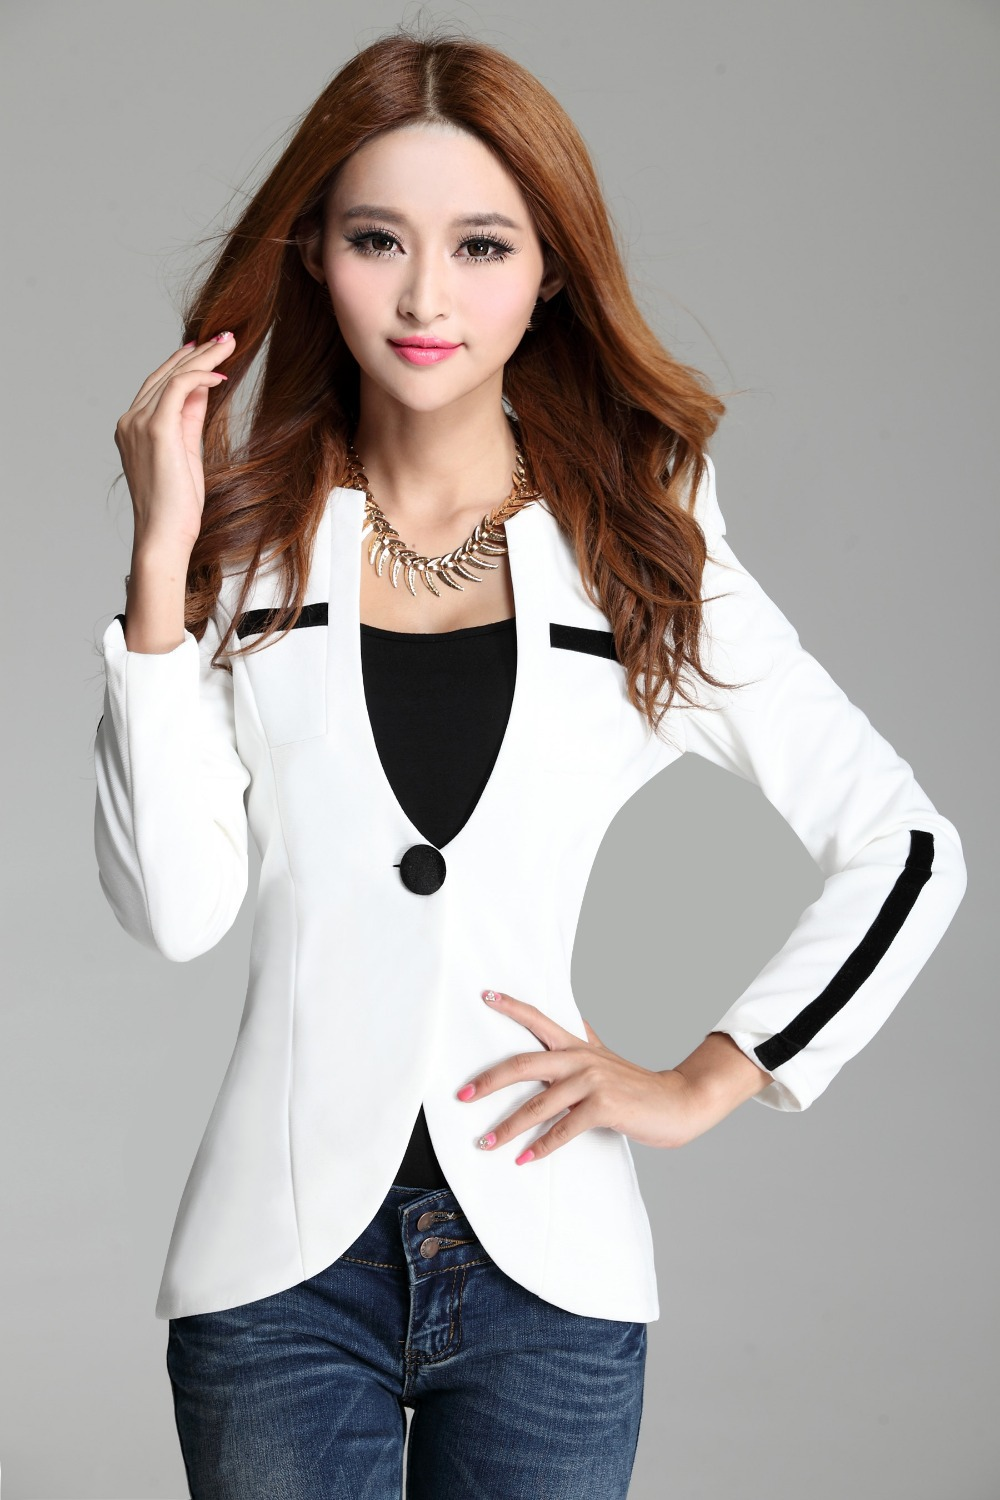 Suit Jacket Styles Picture - More Detailed Picture About Latest Fashion Suit Jacket Women 2014 ...